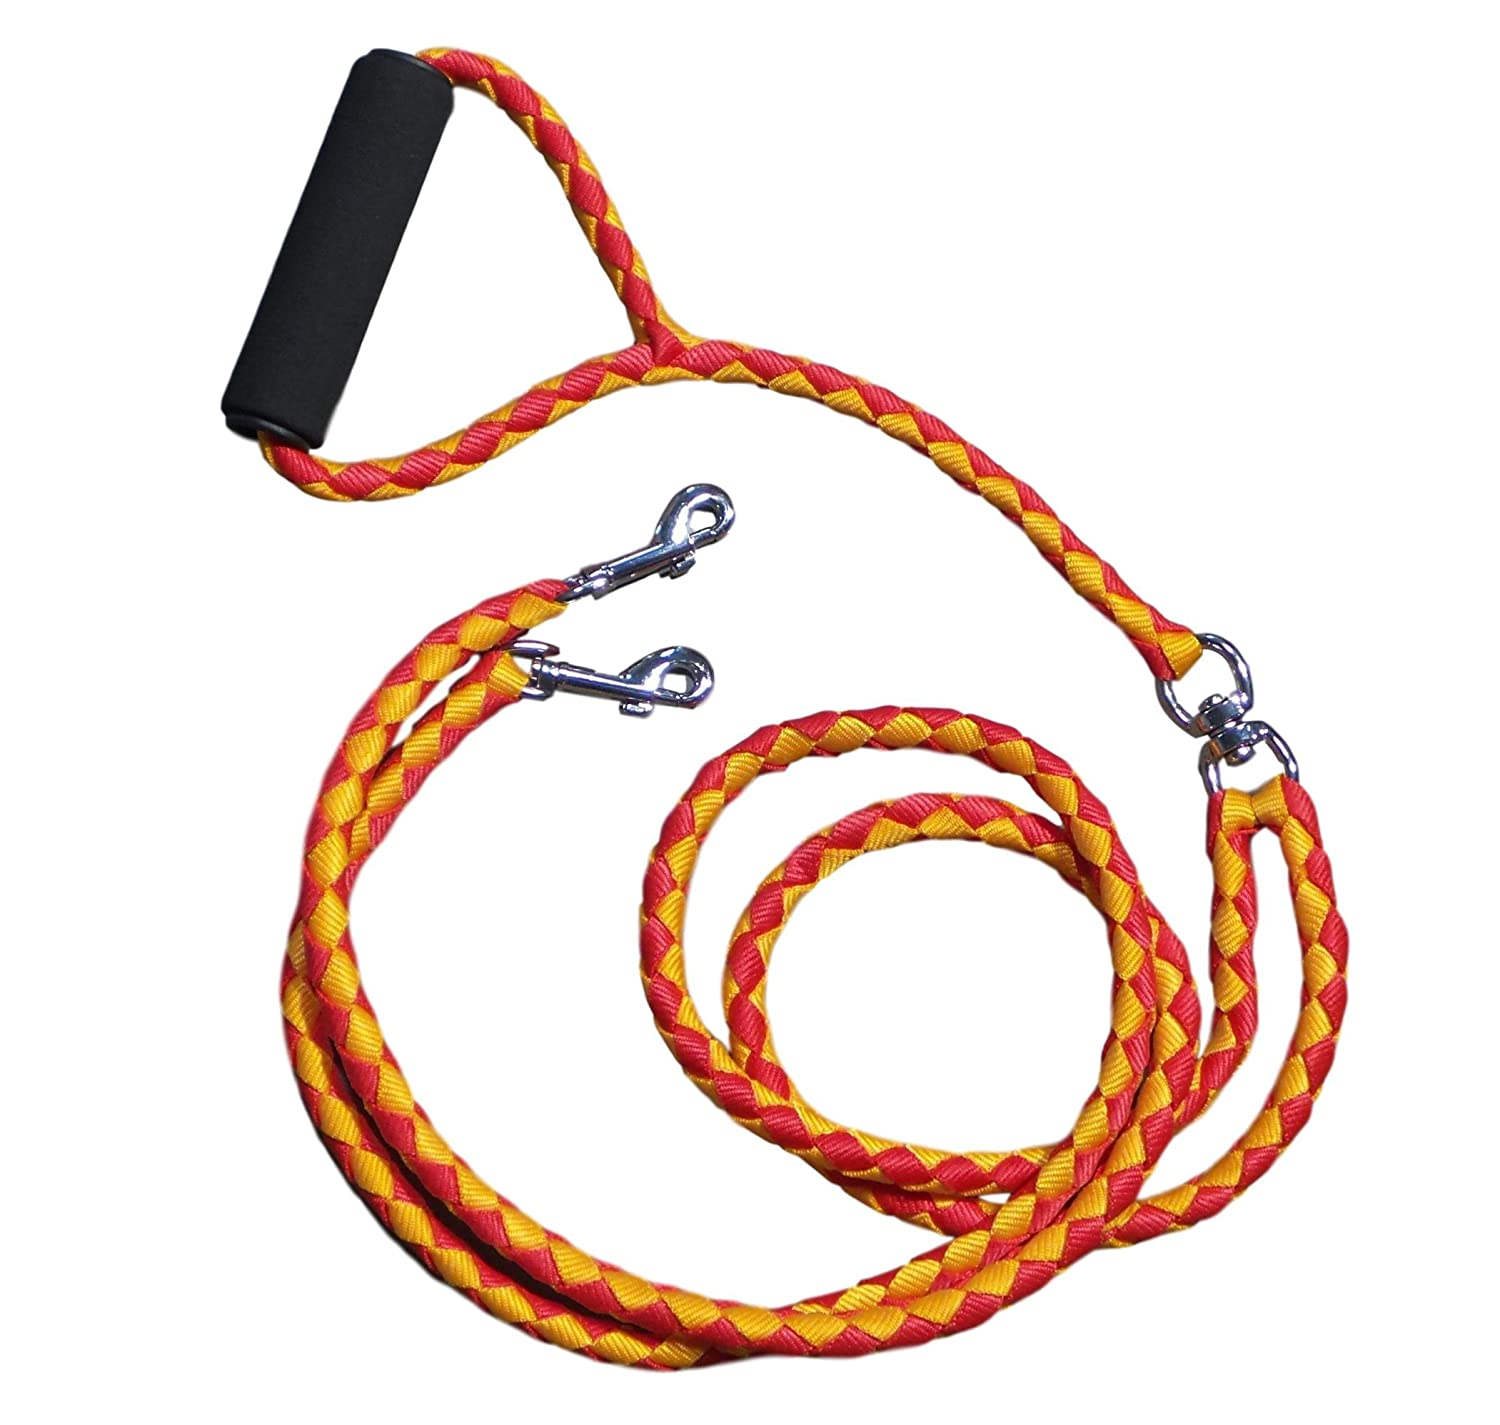 EZ 2 Walk Dual Dog Leash for Small and Medium Sized Dogs with Soft Handle   Walking and Training Leash for Two Dogs   No Tangle